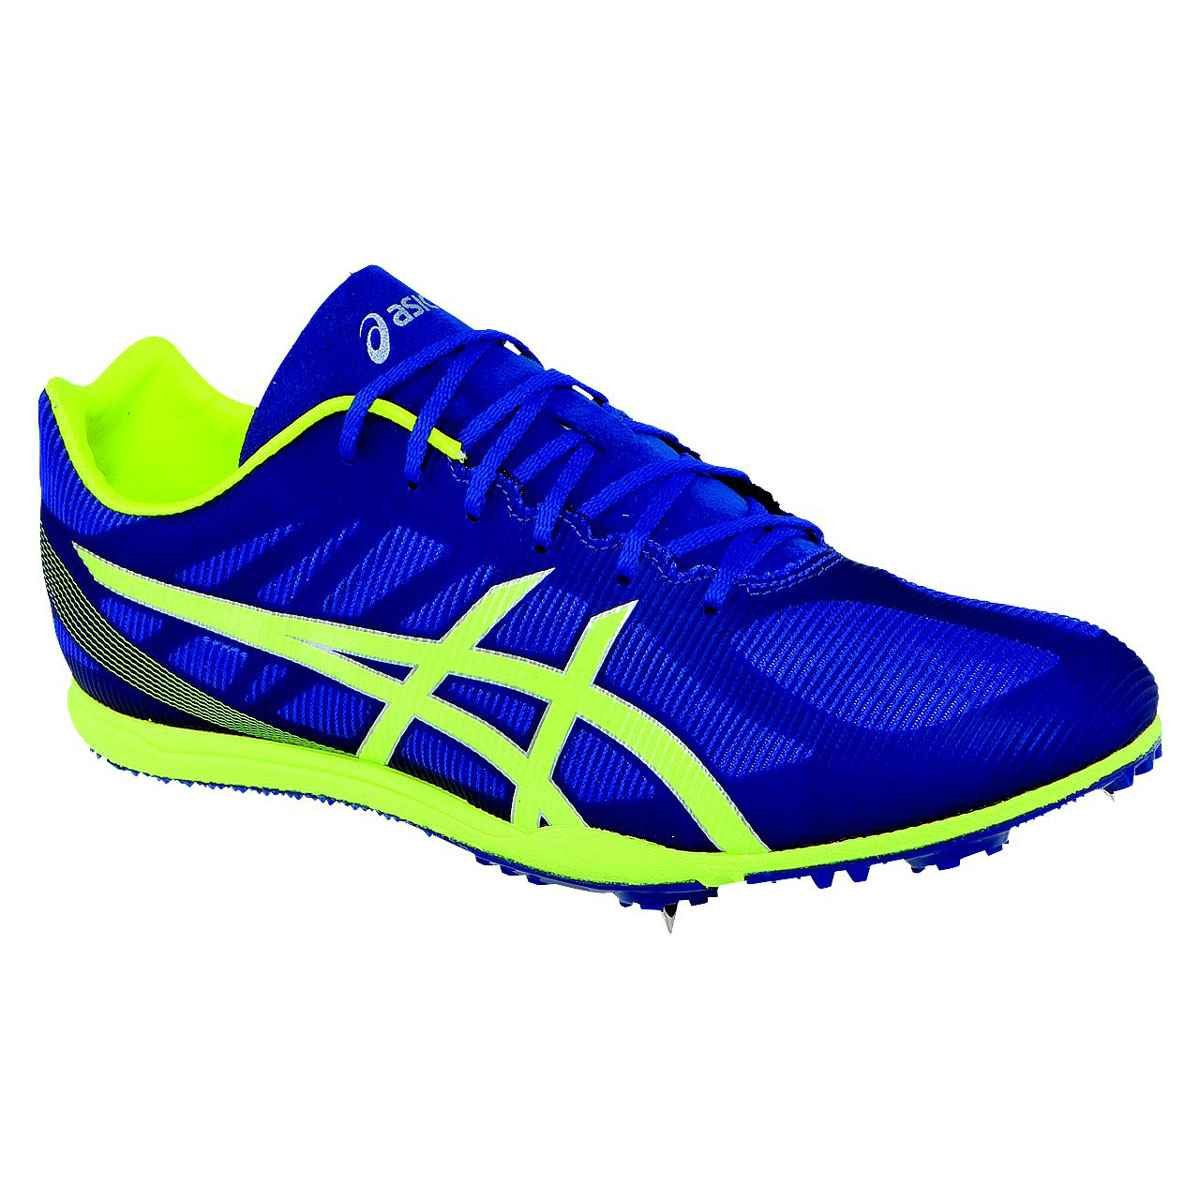 ASICS Men's Heat Chaser Track And Field Shoe B00KOLCM4M 6 D(M) US|Deep Blue/Yellow